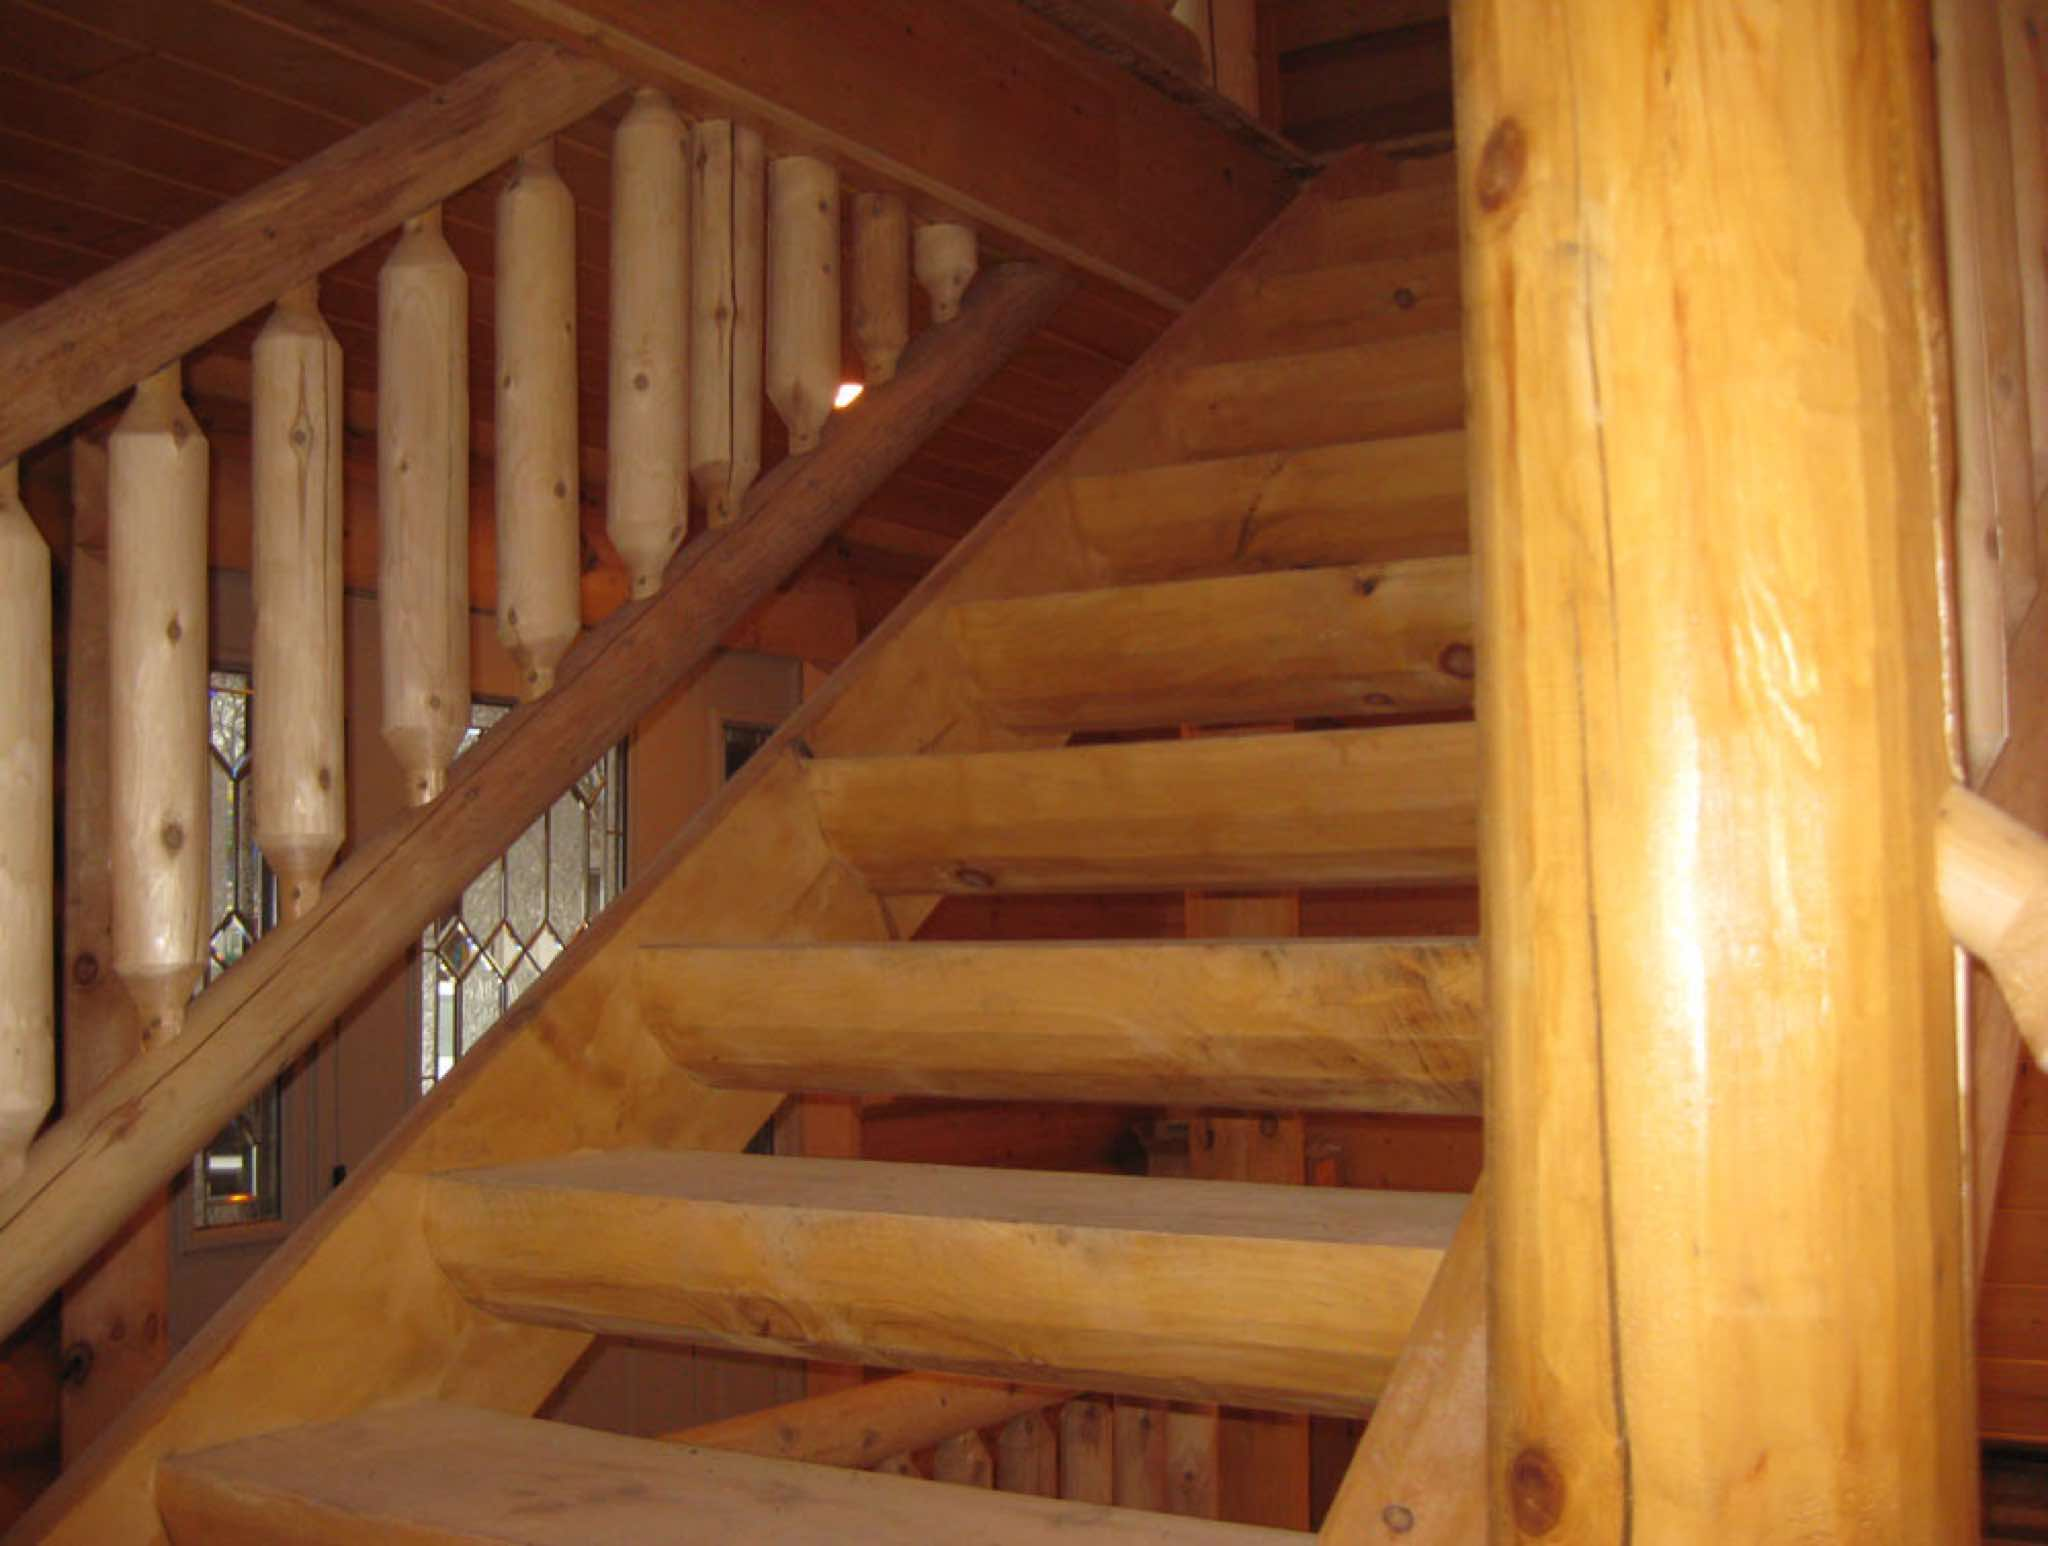 Log Railings And Stairs Are Great For That One Of A Kind Look That You Can  Only Get With Log.